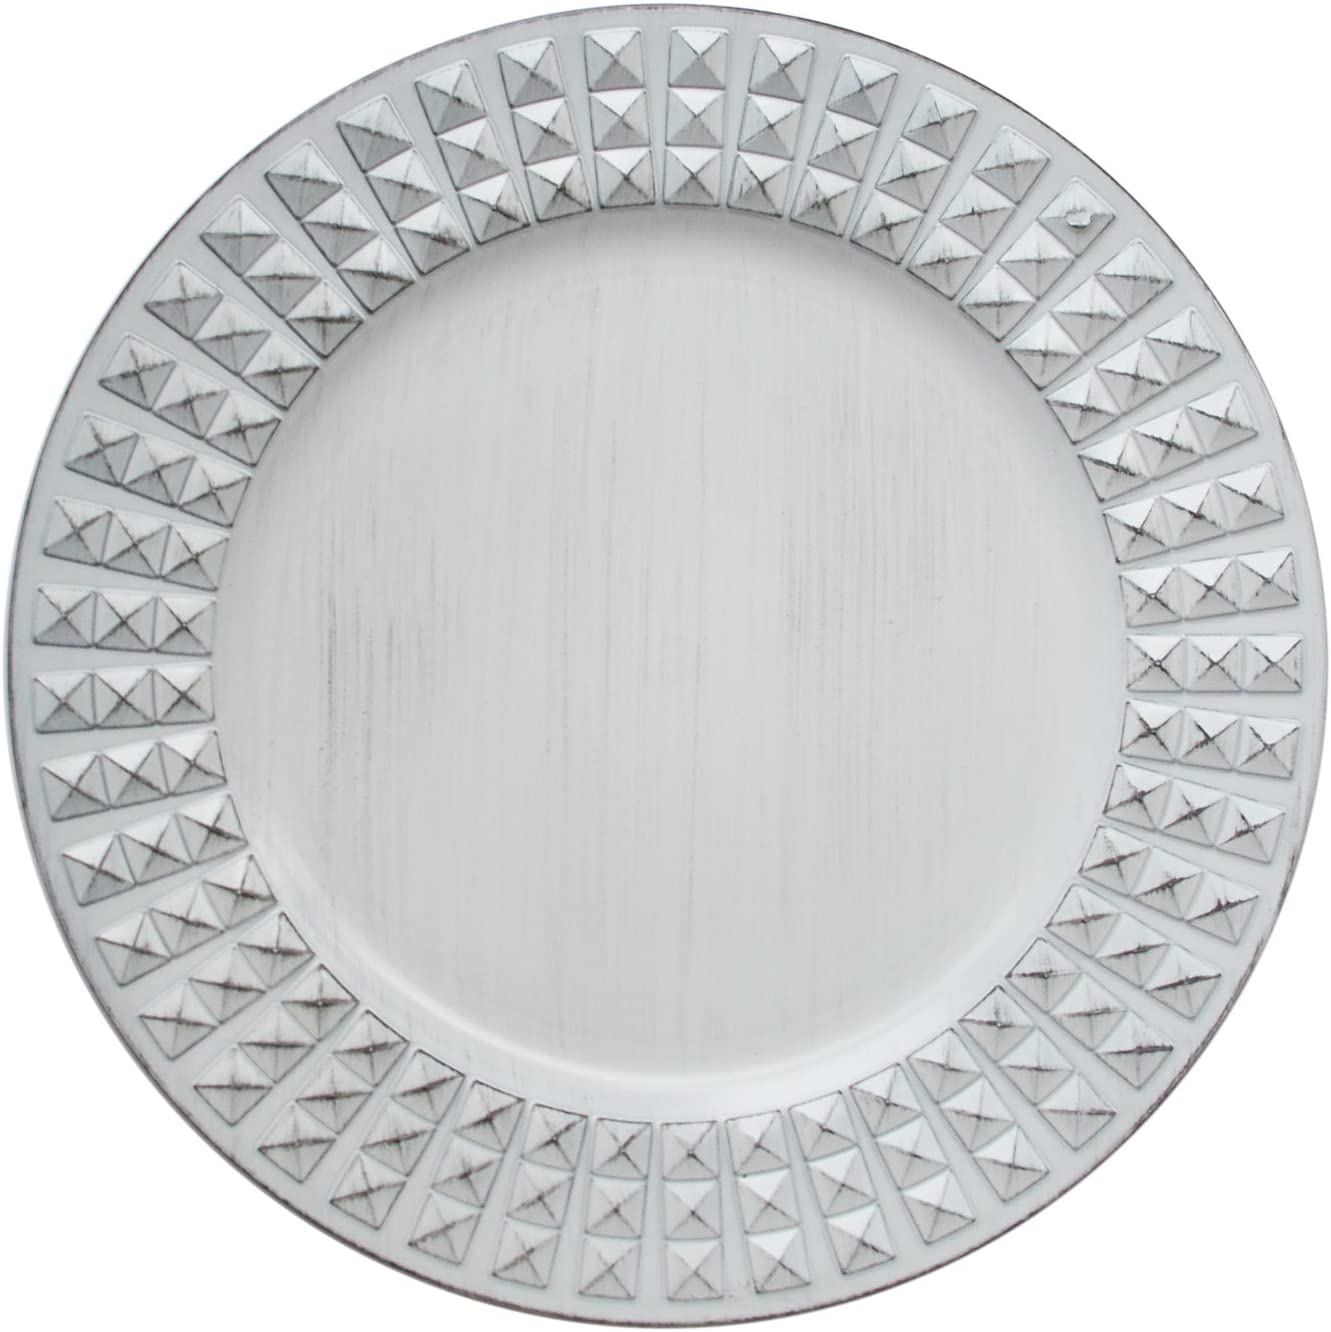 ChargeIt by Jay Antiqued Charger Max 67% OFF Choice White Plate